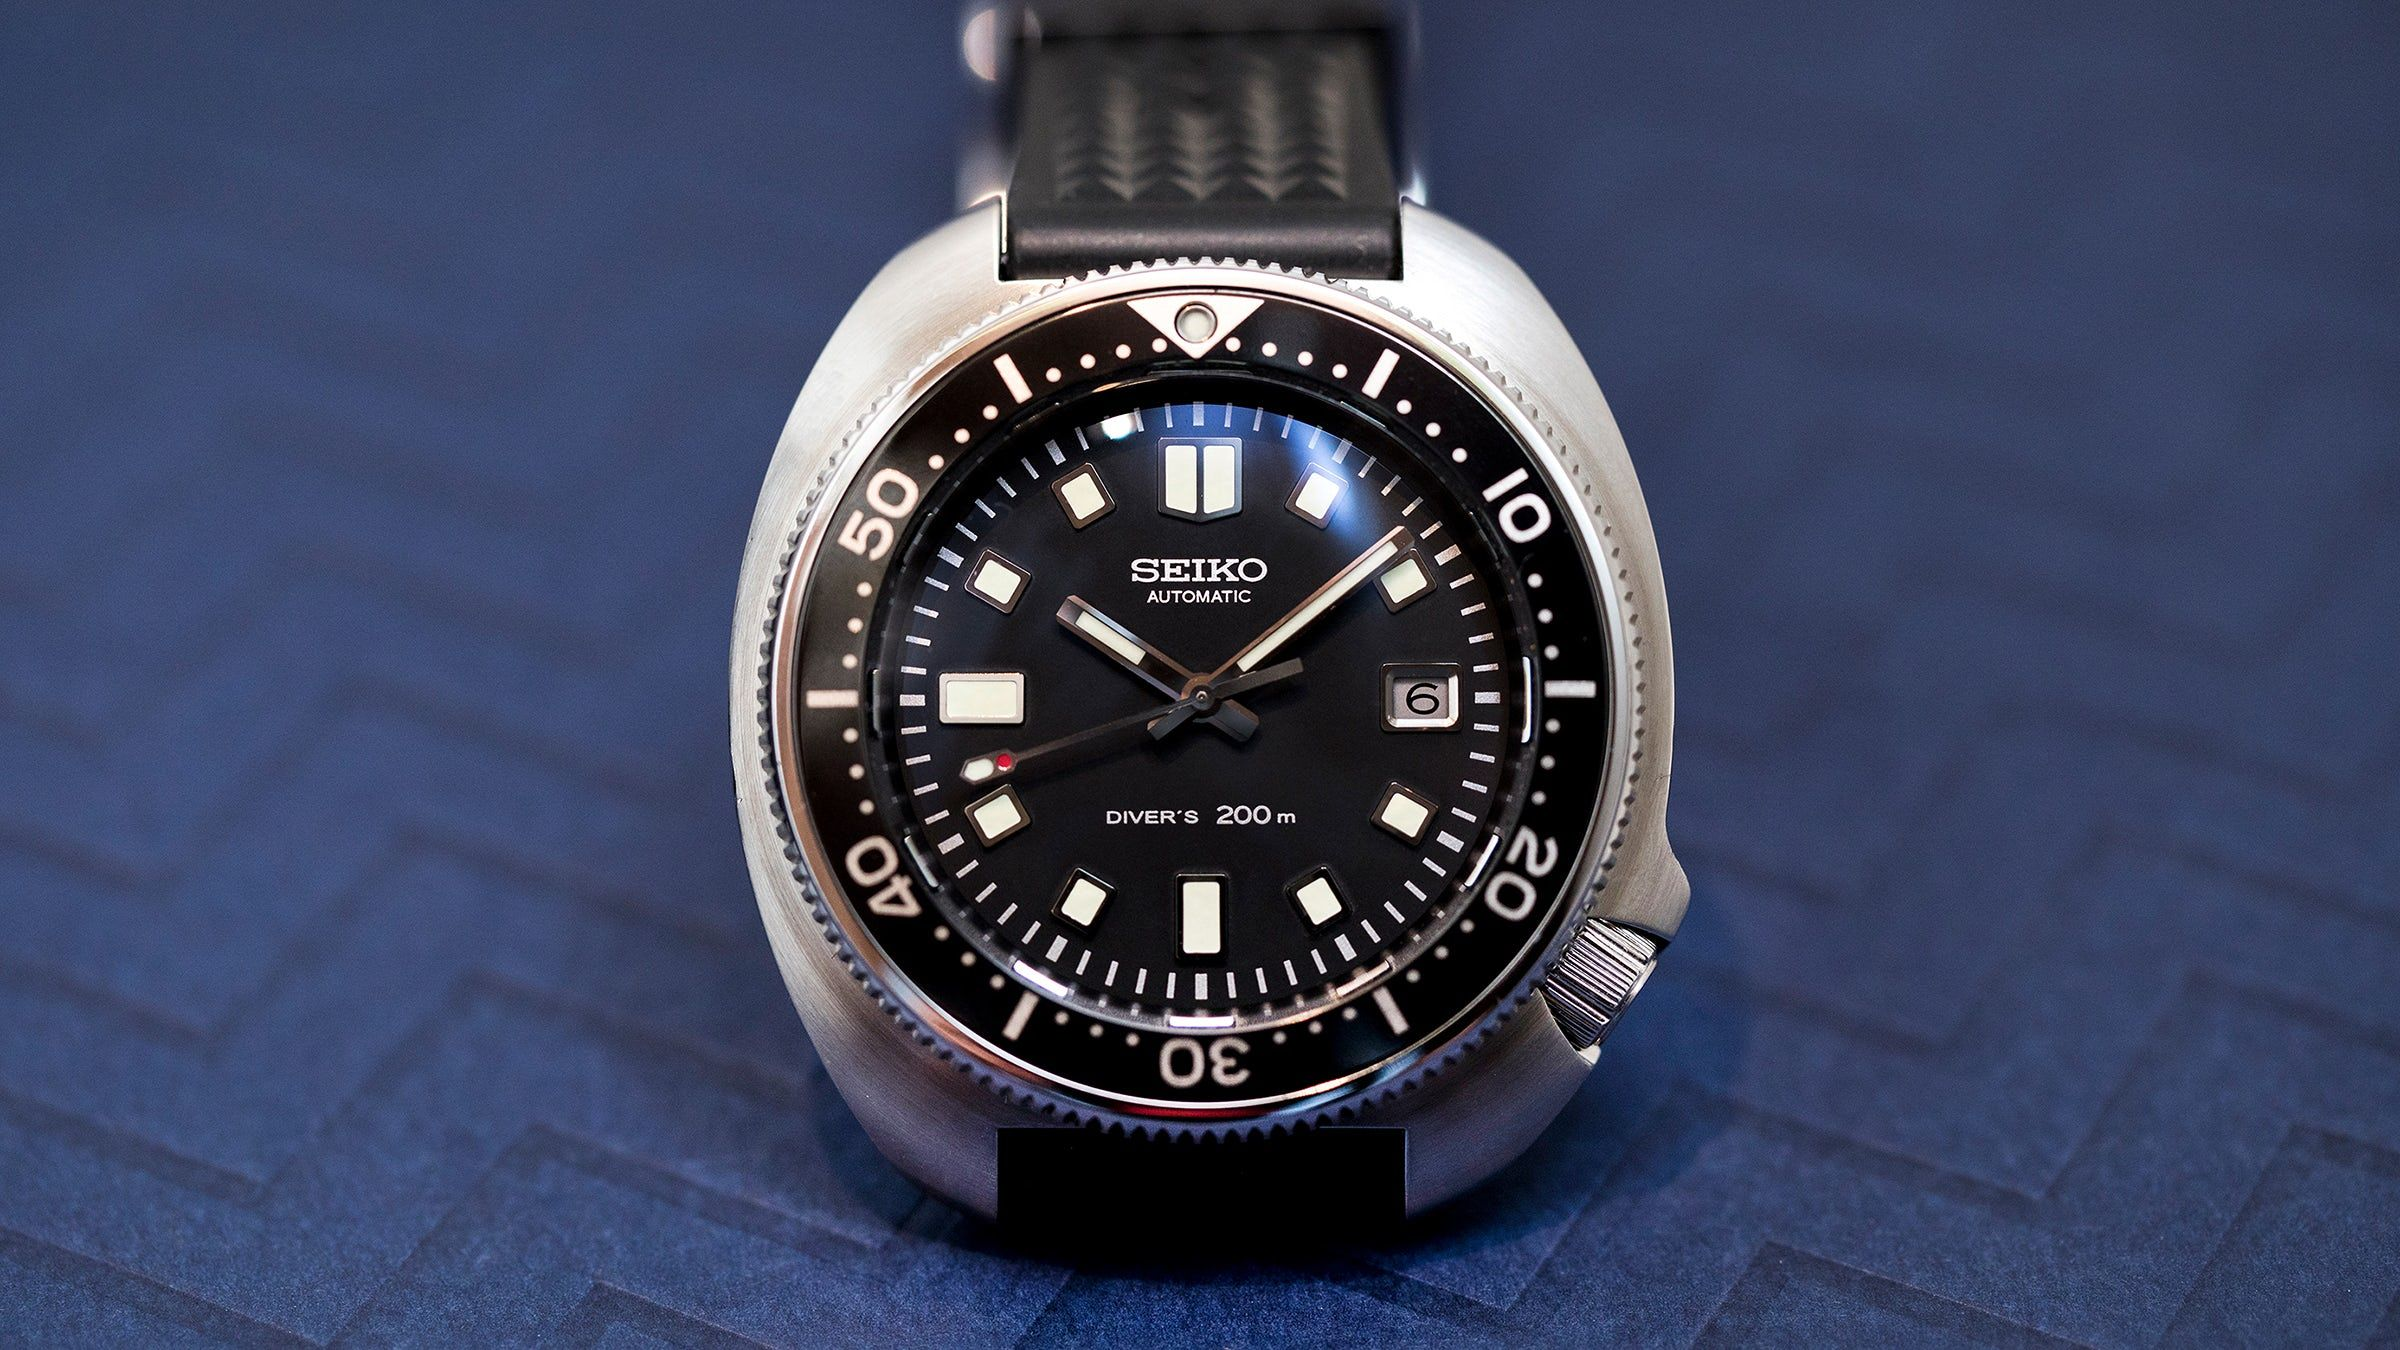 47a9285b2 Hands-On: The Seiko Prospex 1970 Diver's Re-Creation Limited Edition SLA033  - HODINKEE